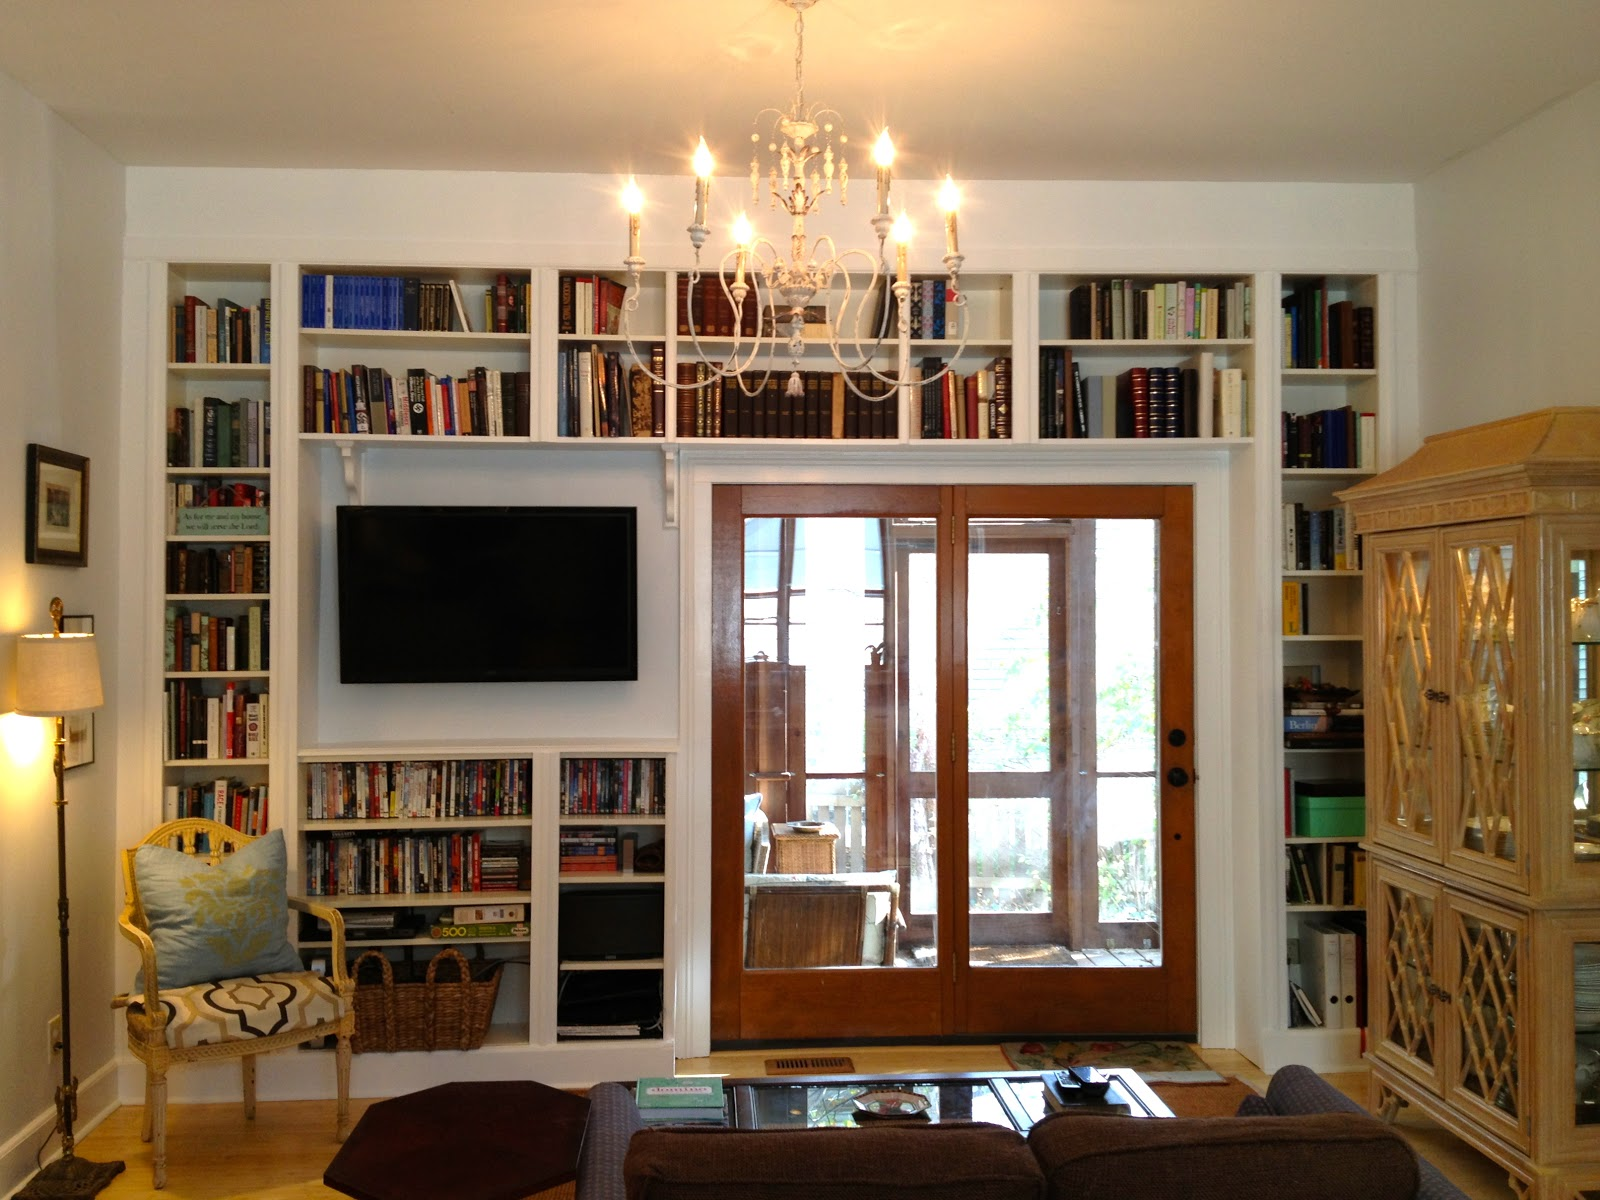 Interested Wall Covered with Built in Bookshelves for the Remaining Space of TV and Doors